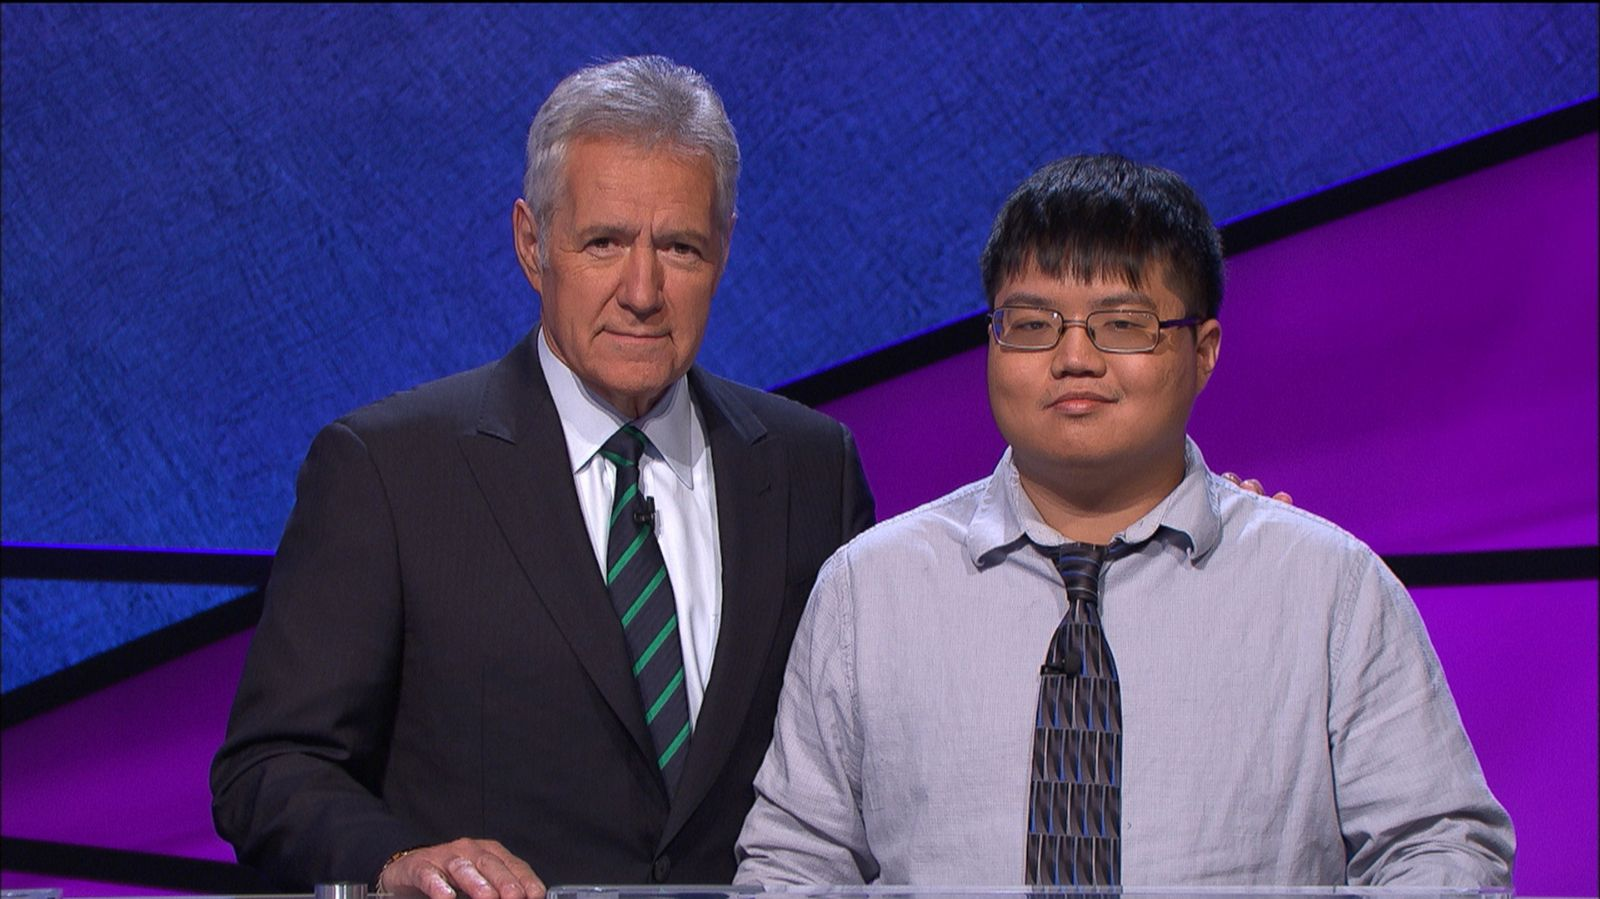 See Alex Trebek Play Jeopardy